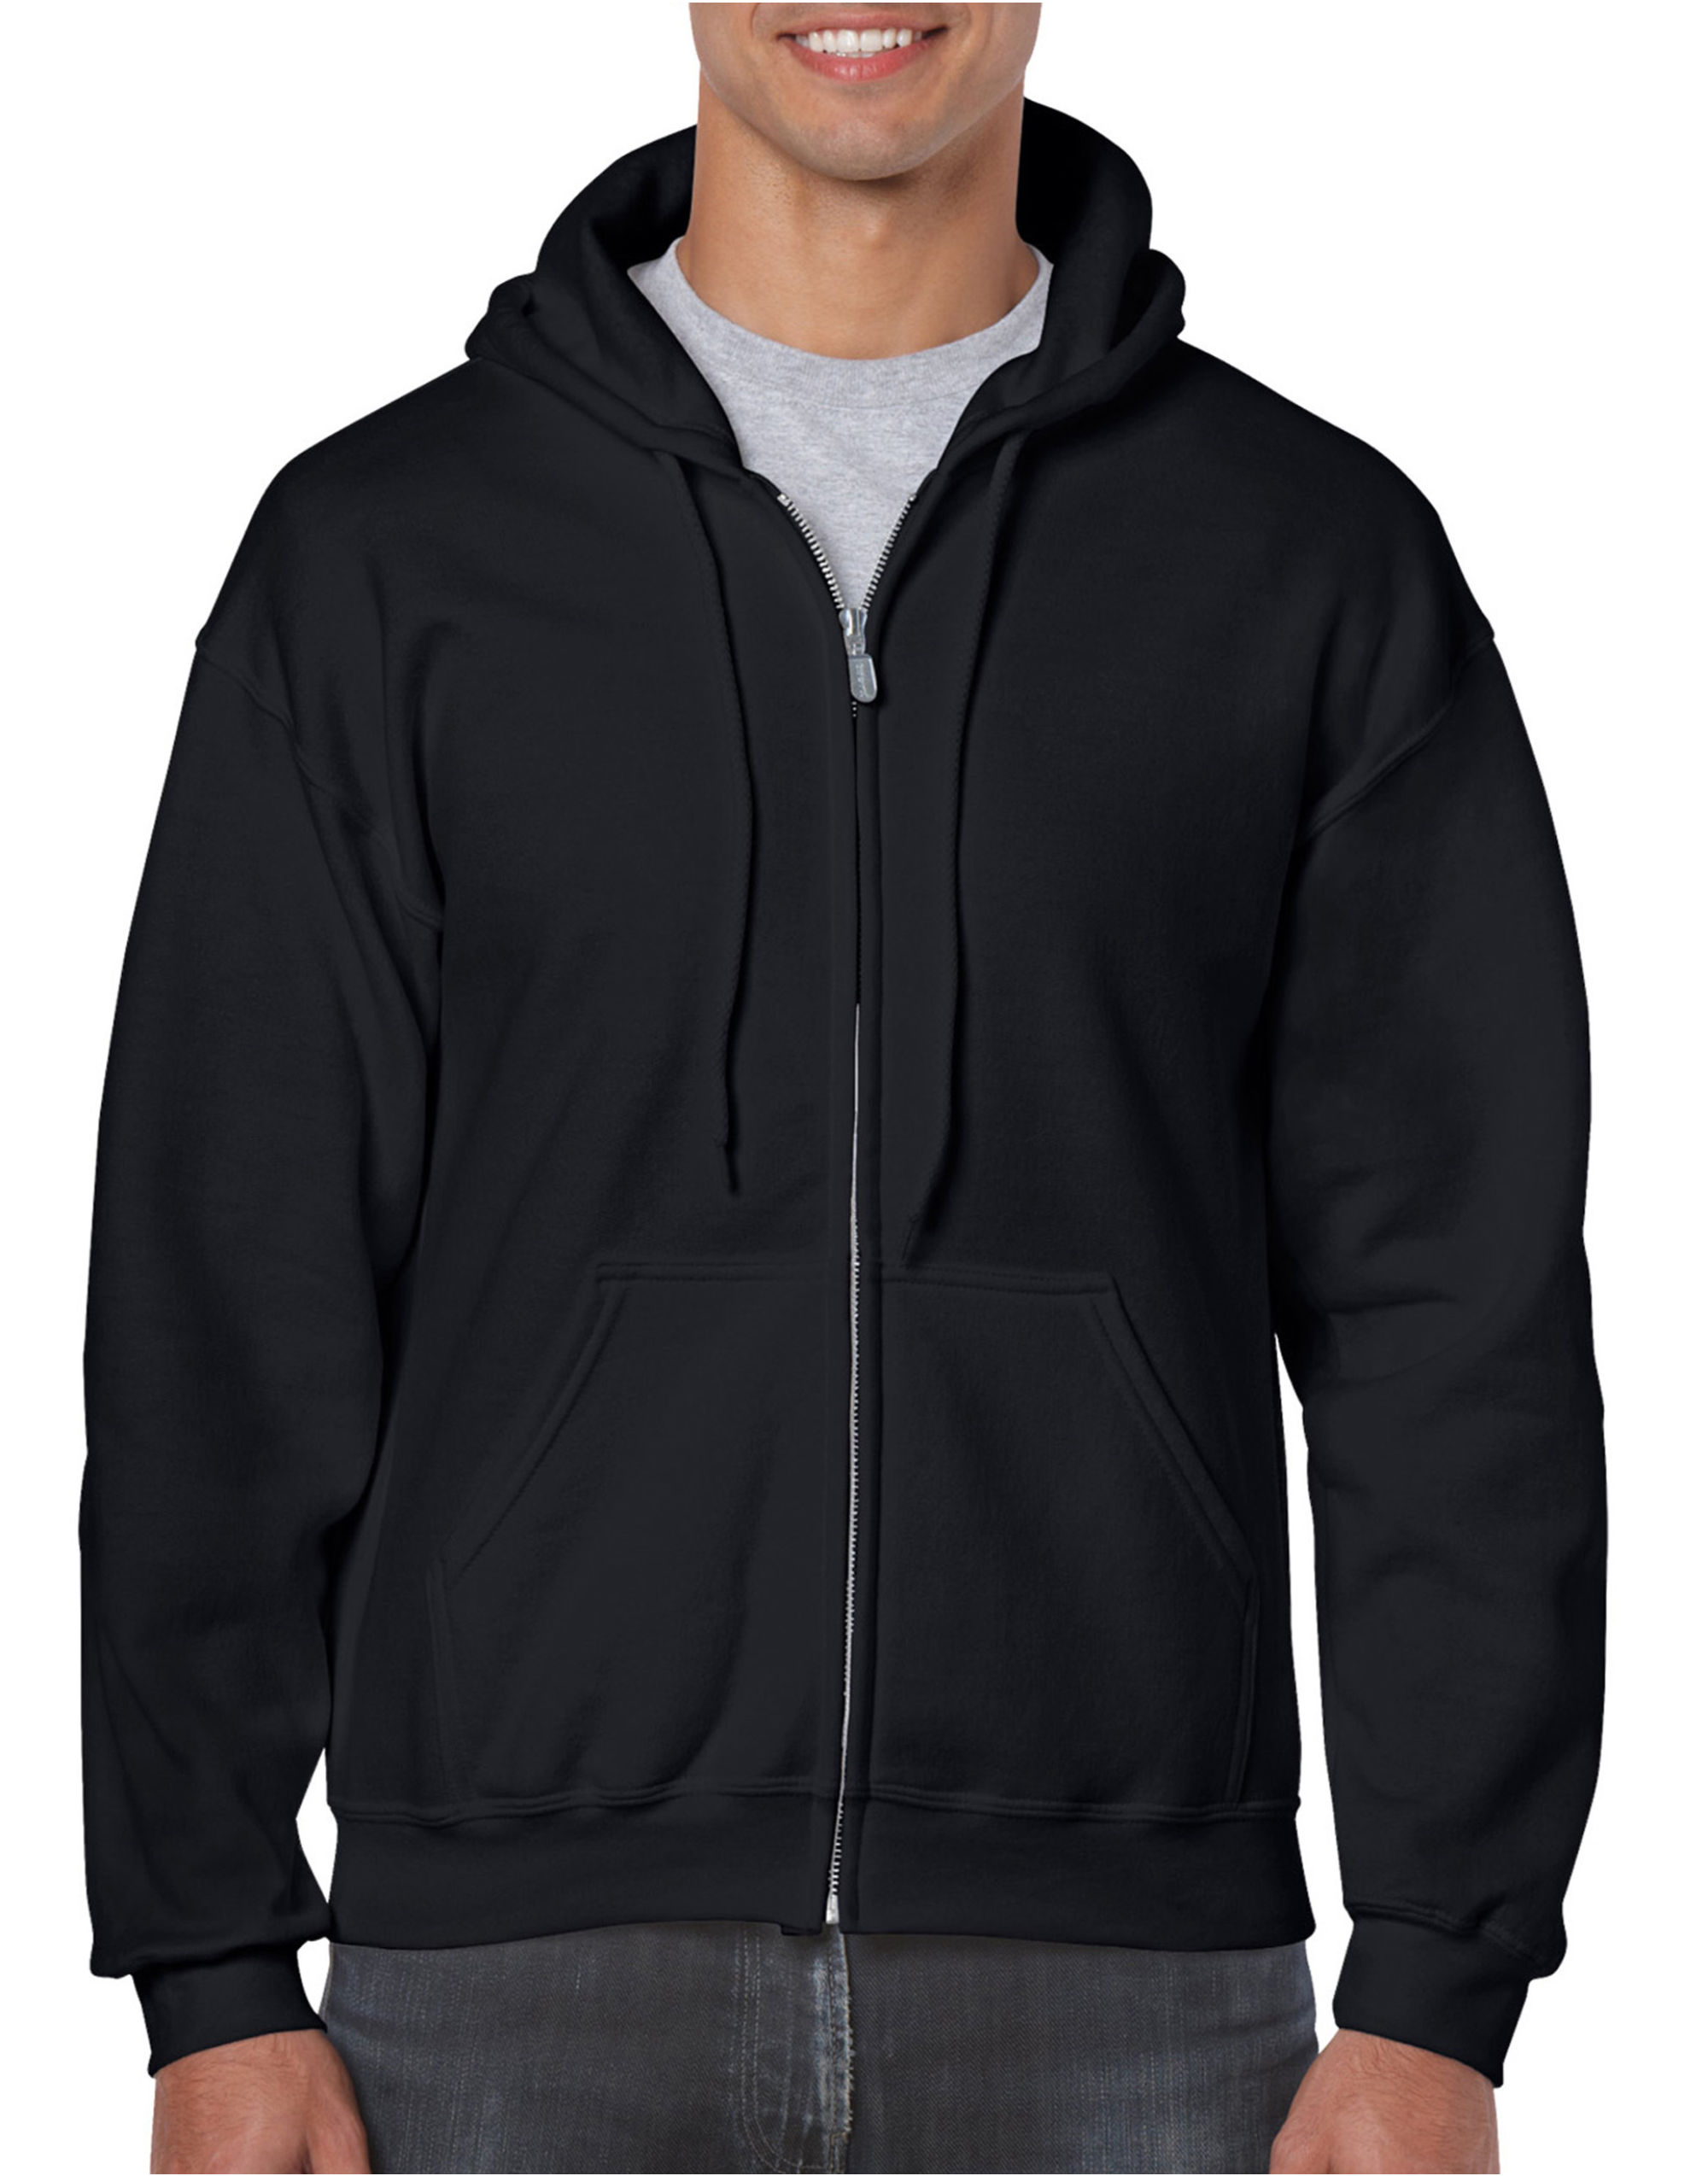 Gildan Adult Full Zip Hooded Sweatshir...